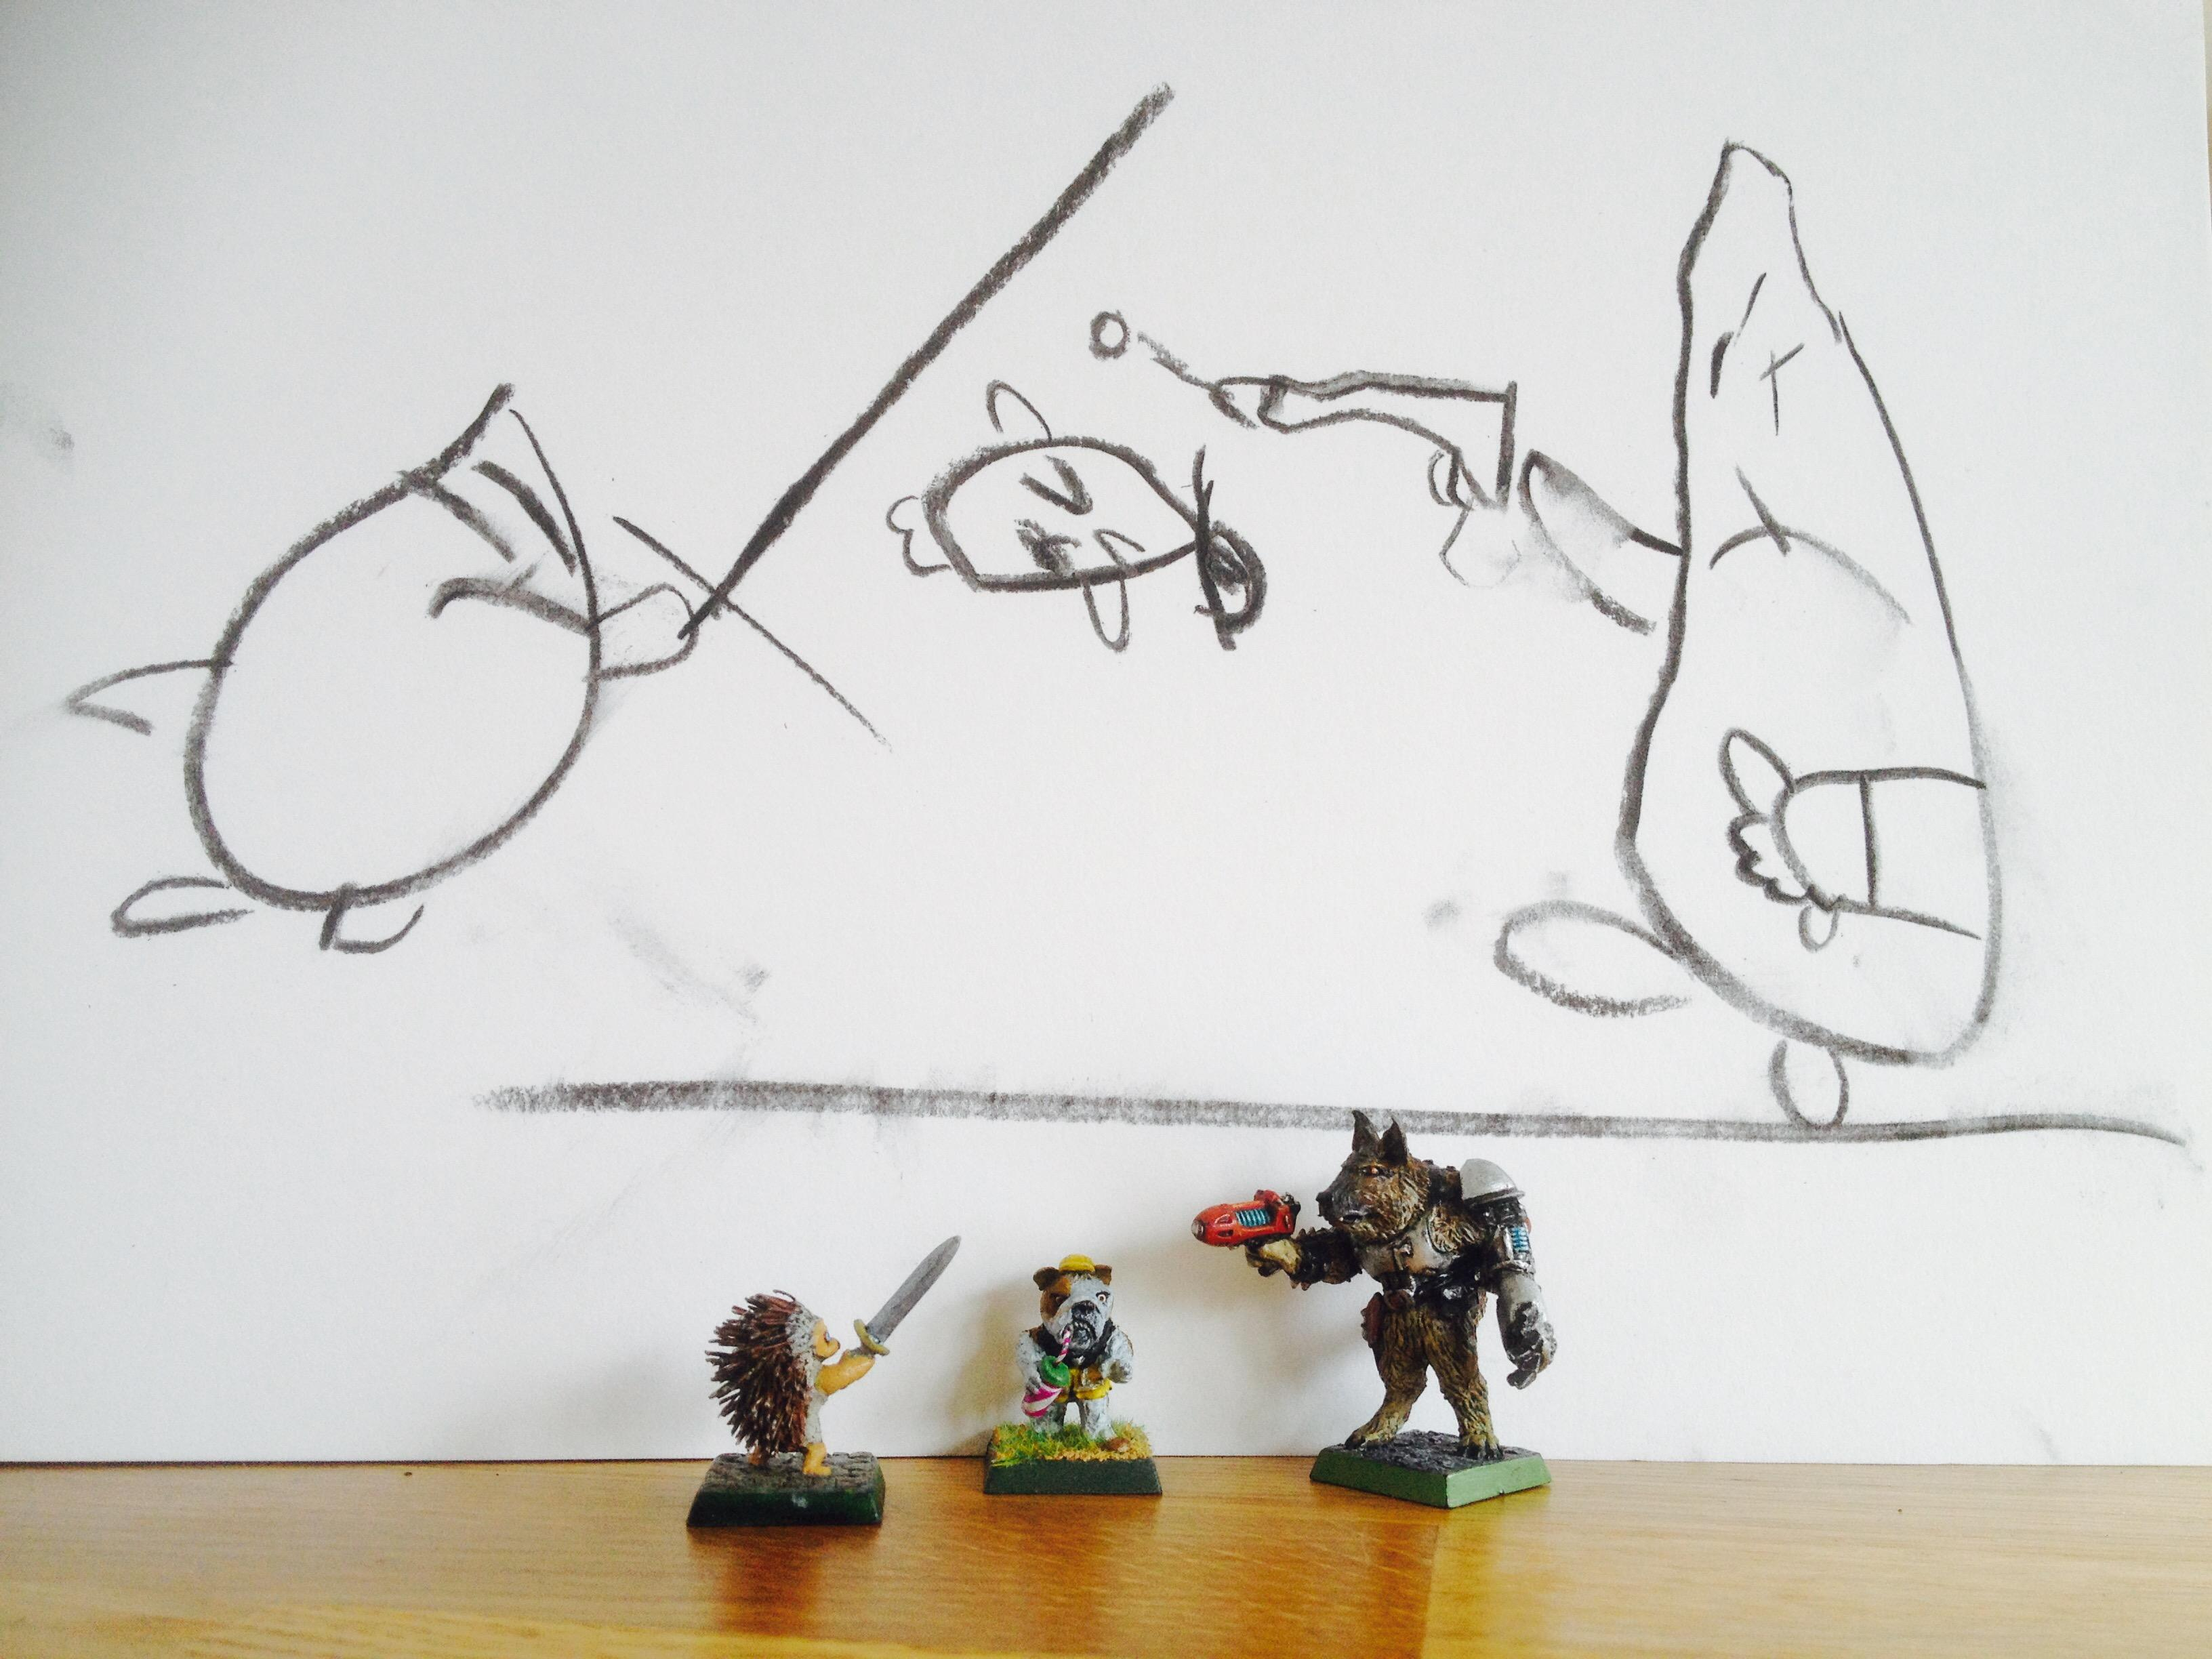 Animals, Anthropomorphic Animals, Cute, Kids, Original Characters, Sculpting, Young Gamers